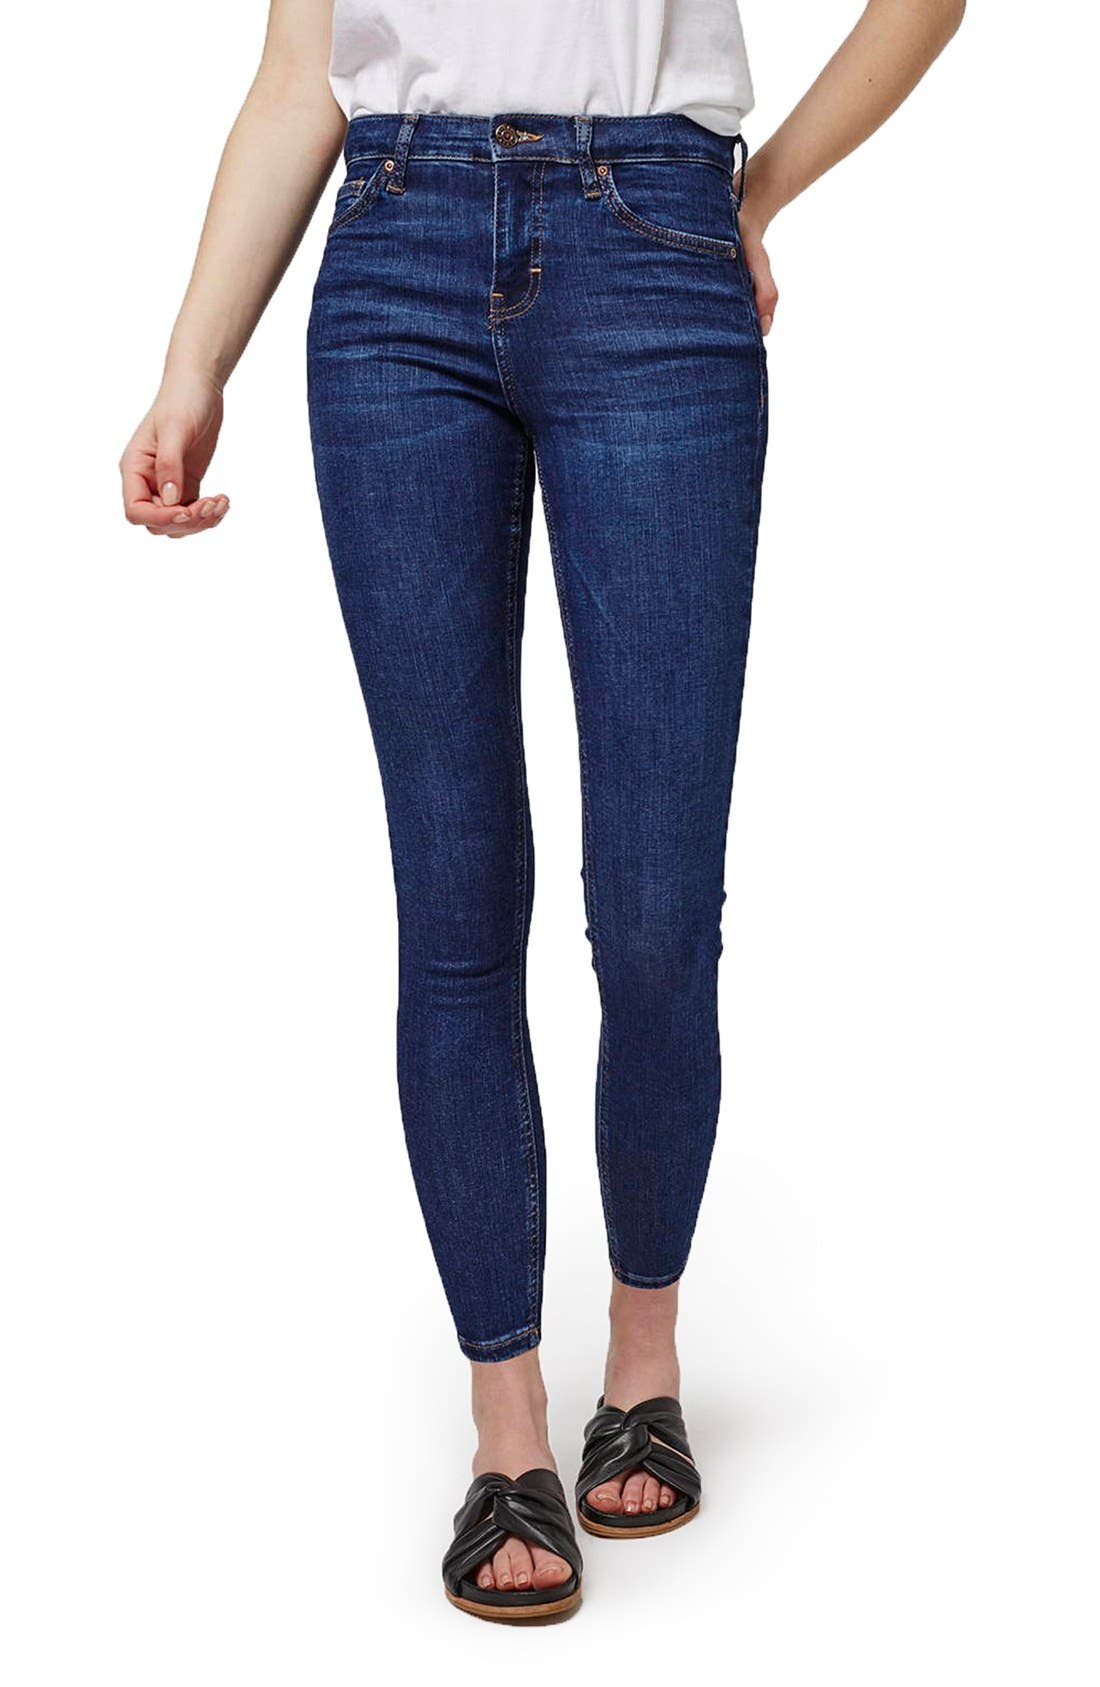 Main Image - Topshop 'Jamie' High Rise Ankle Skinny Jeans (Petite)